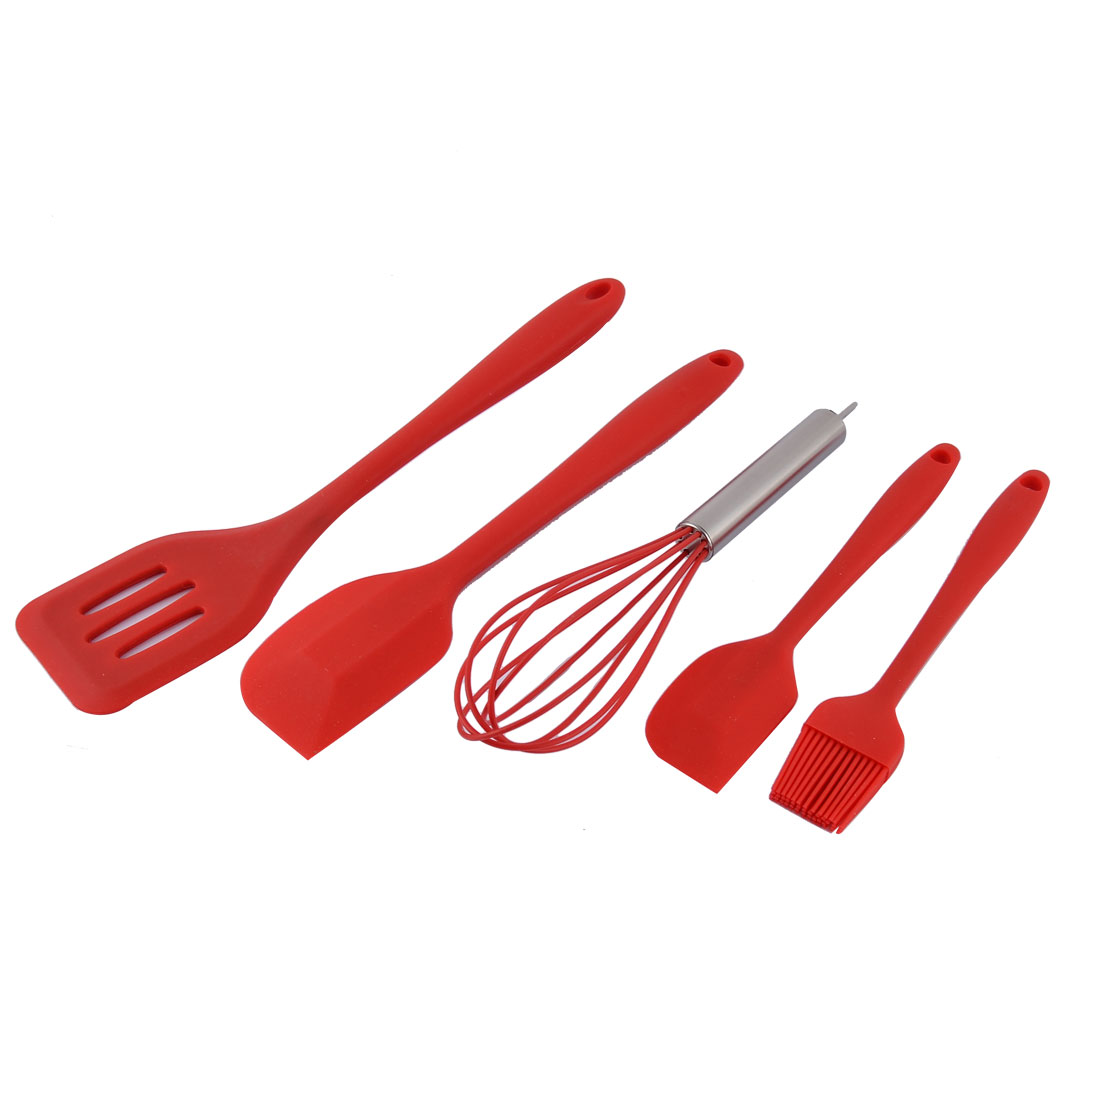 Home Kitchen Silicone Heat Resistant Spatula Brush Egg Whisk Baking Tool Utensil Set Red 5 in 1